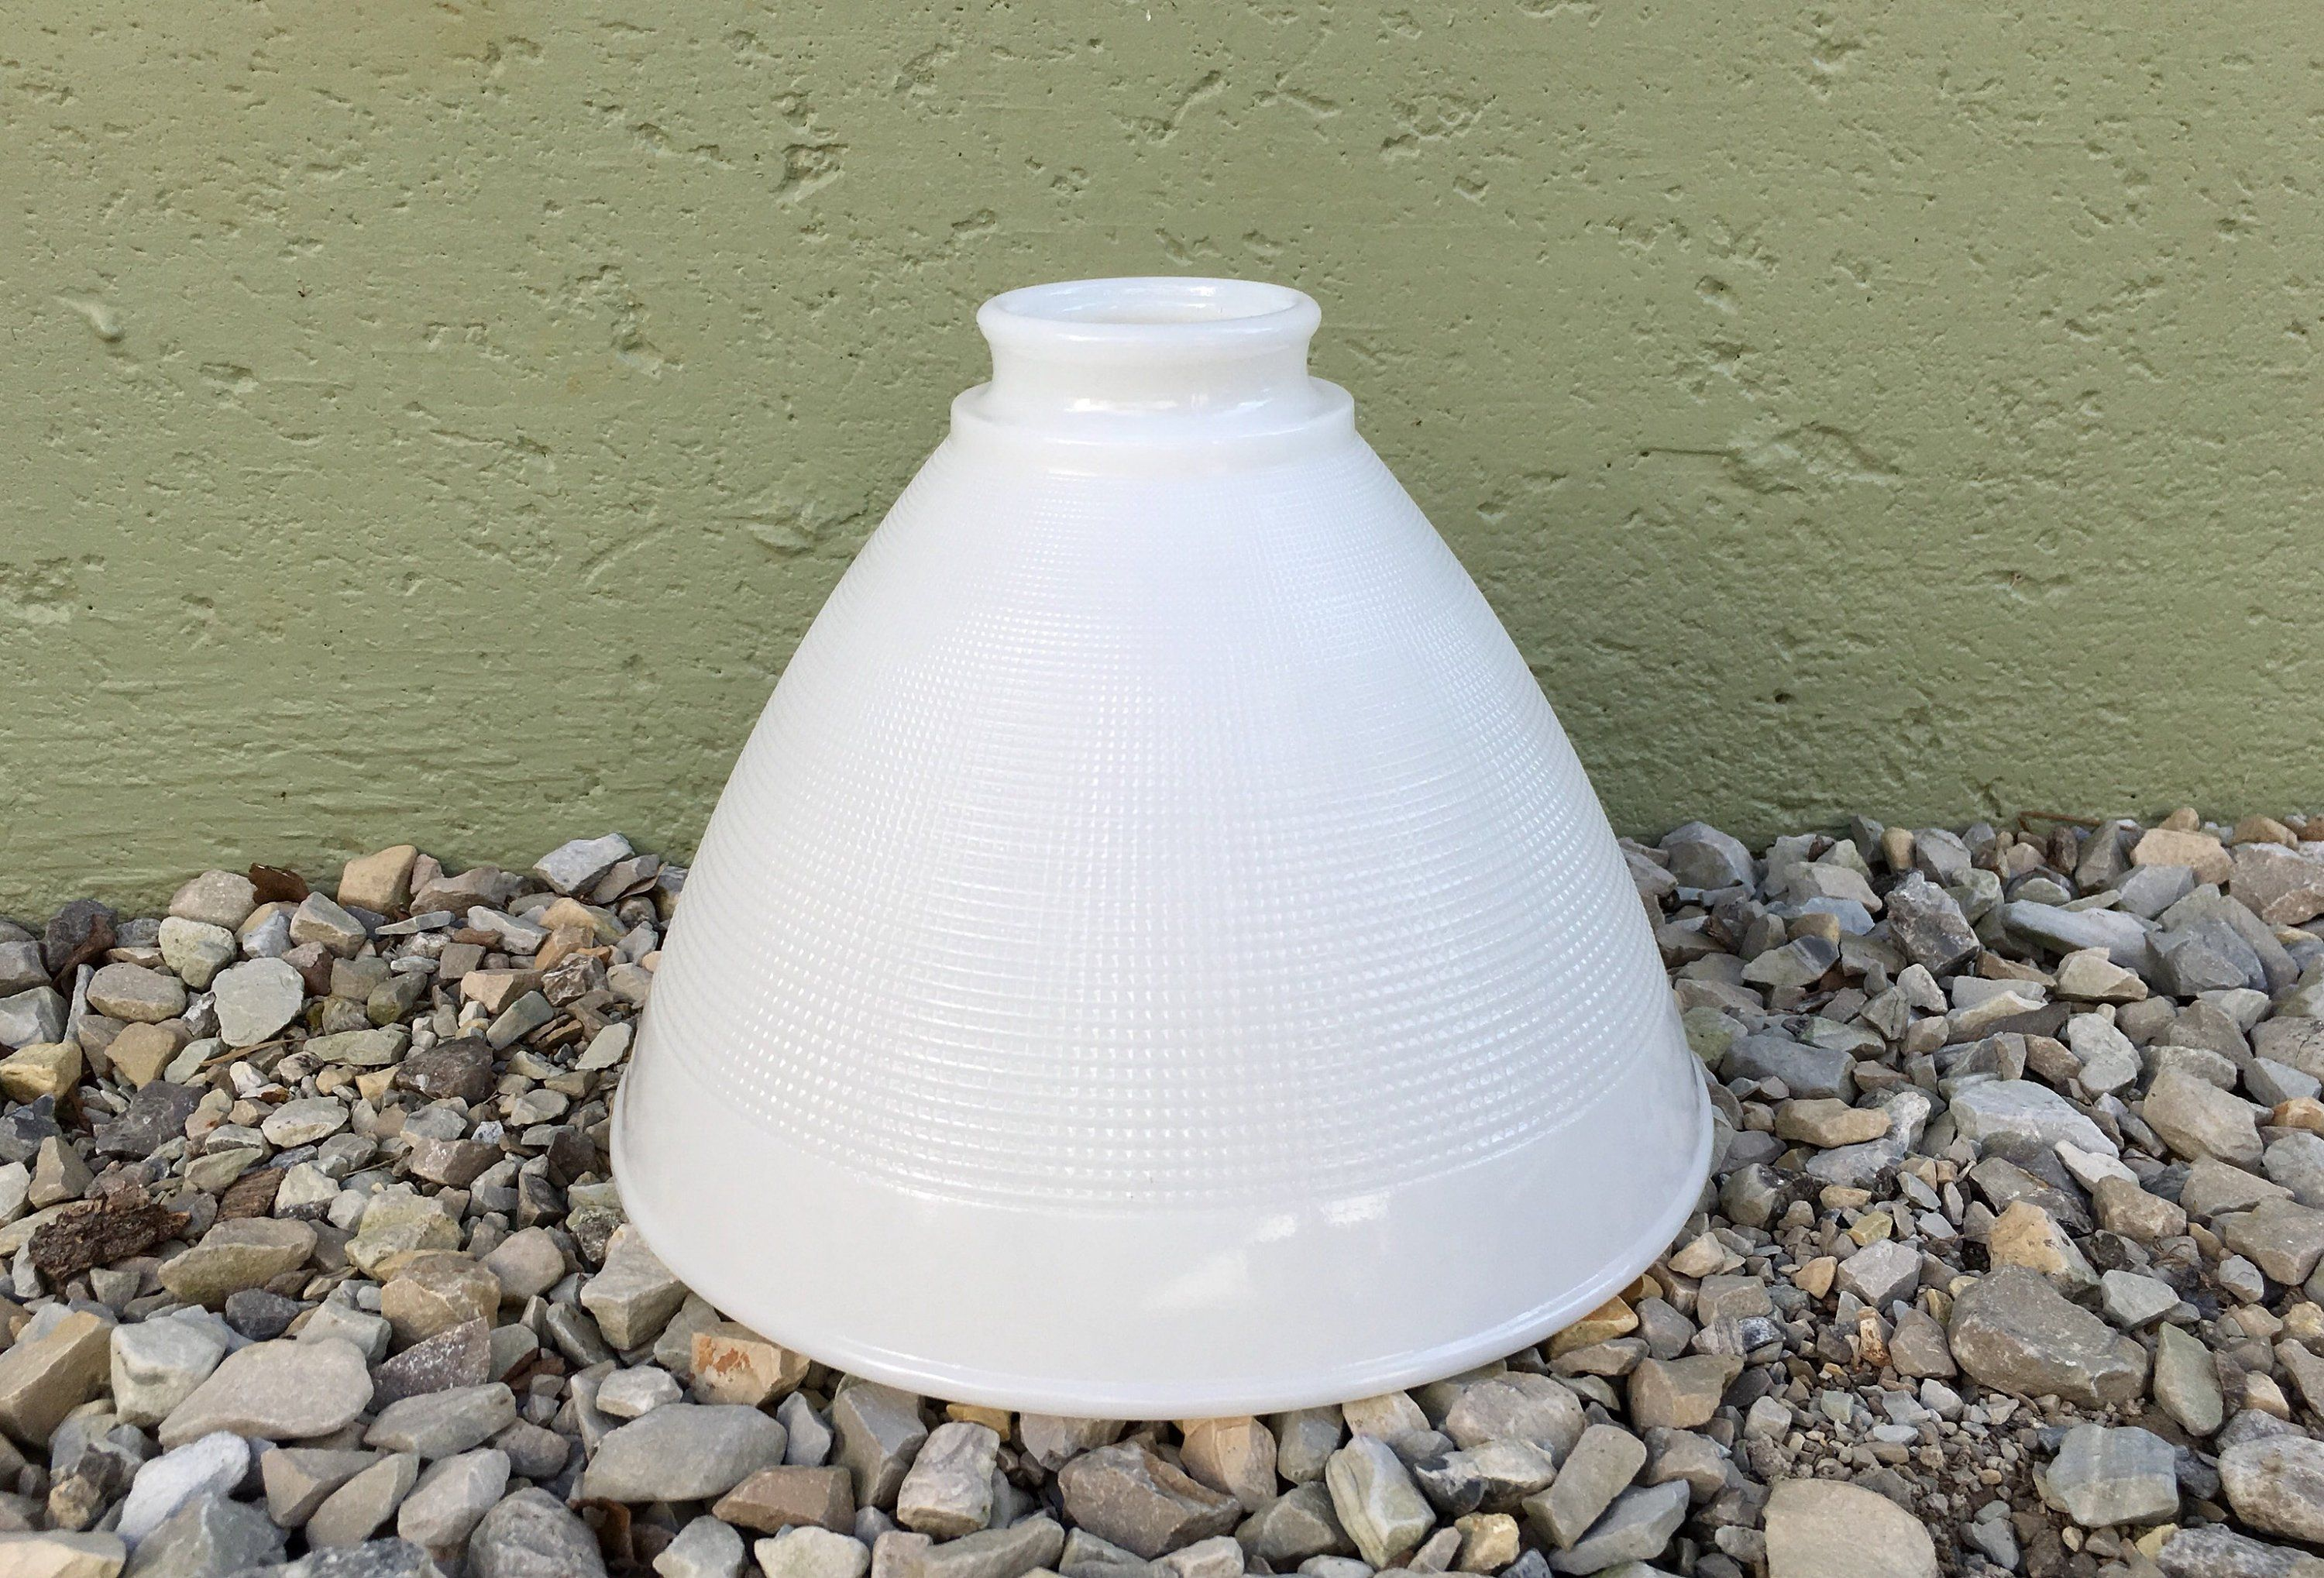 Vintage Milk Glass Mid Century Replacement Globe Retro Style Lighting Honeycomb Waffle Weave Floor Table Lamp Dif Retro Floor Lamps Vintage Lighting Milk Glass